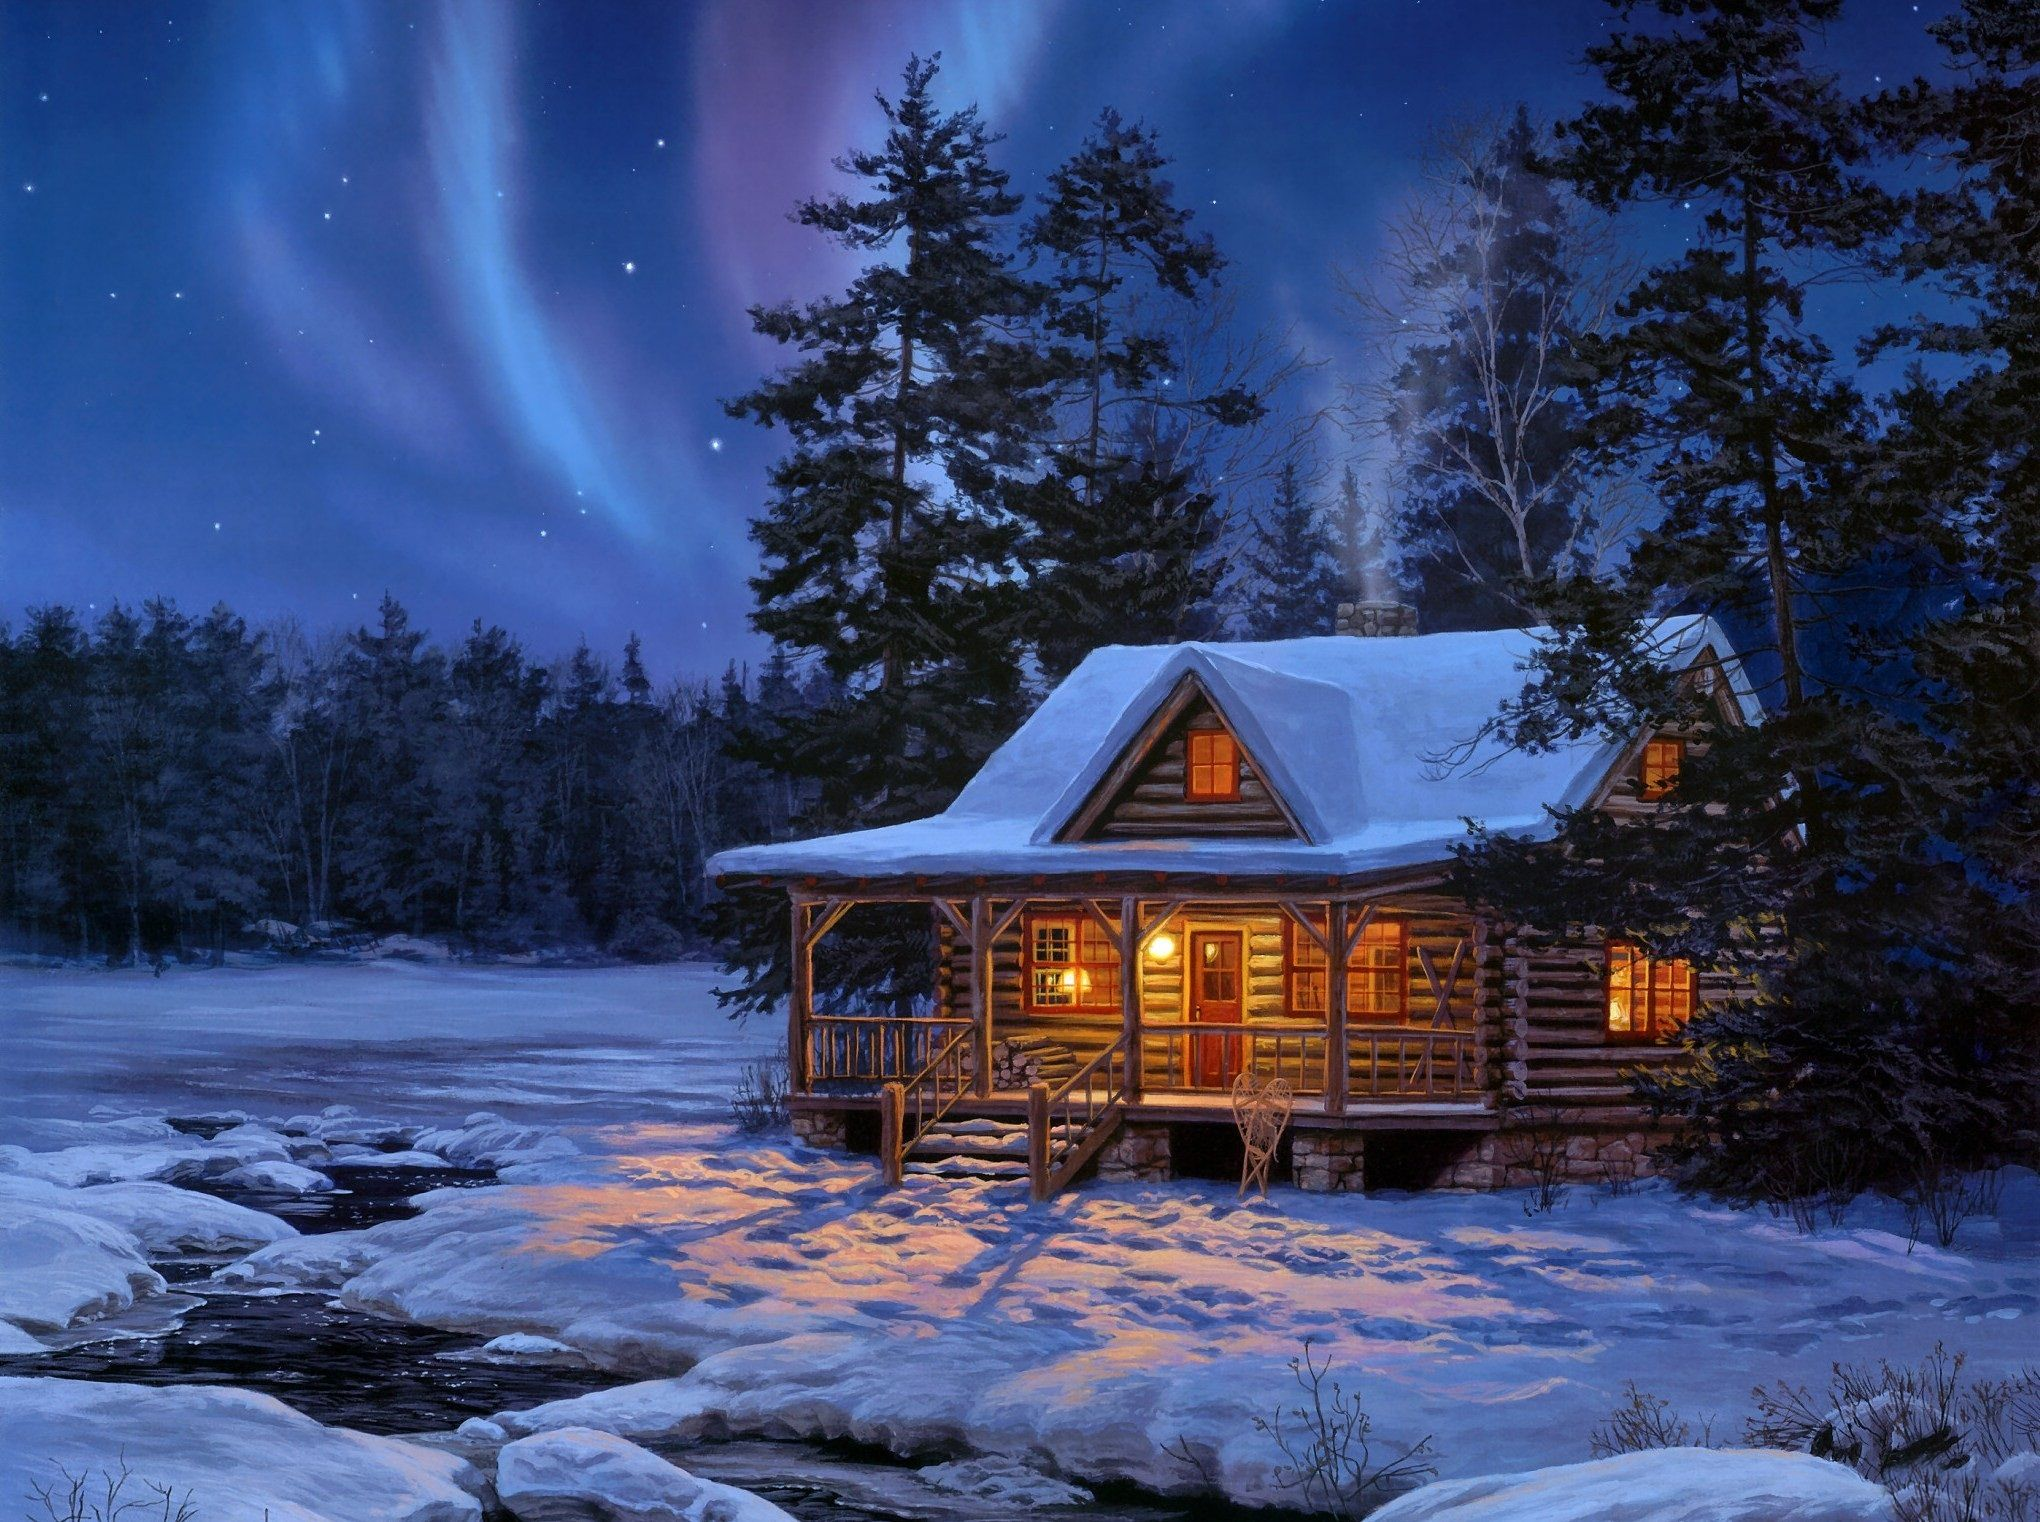 HD A Small Cottage In The Snowy Woods Wallpaper Download 2040x1522